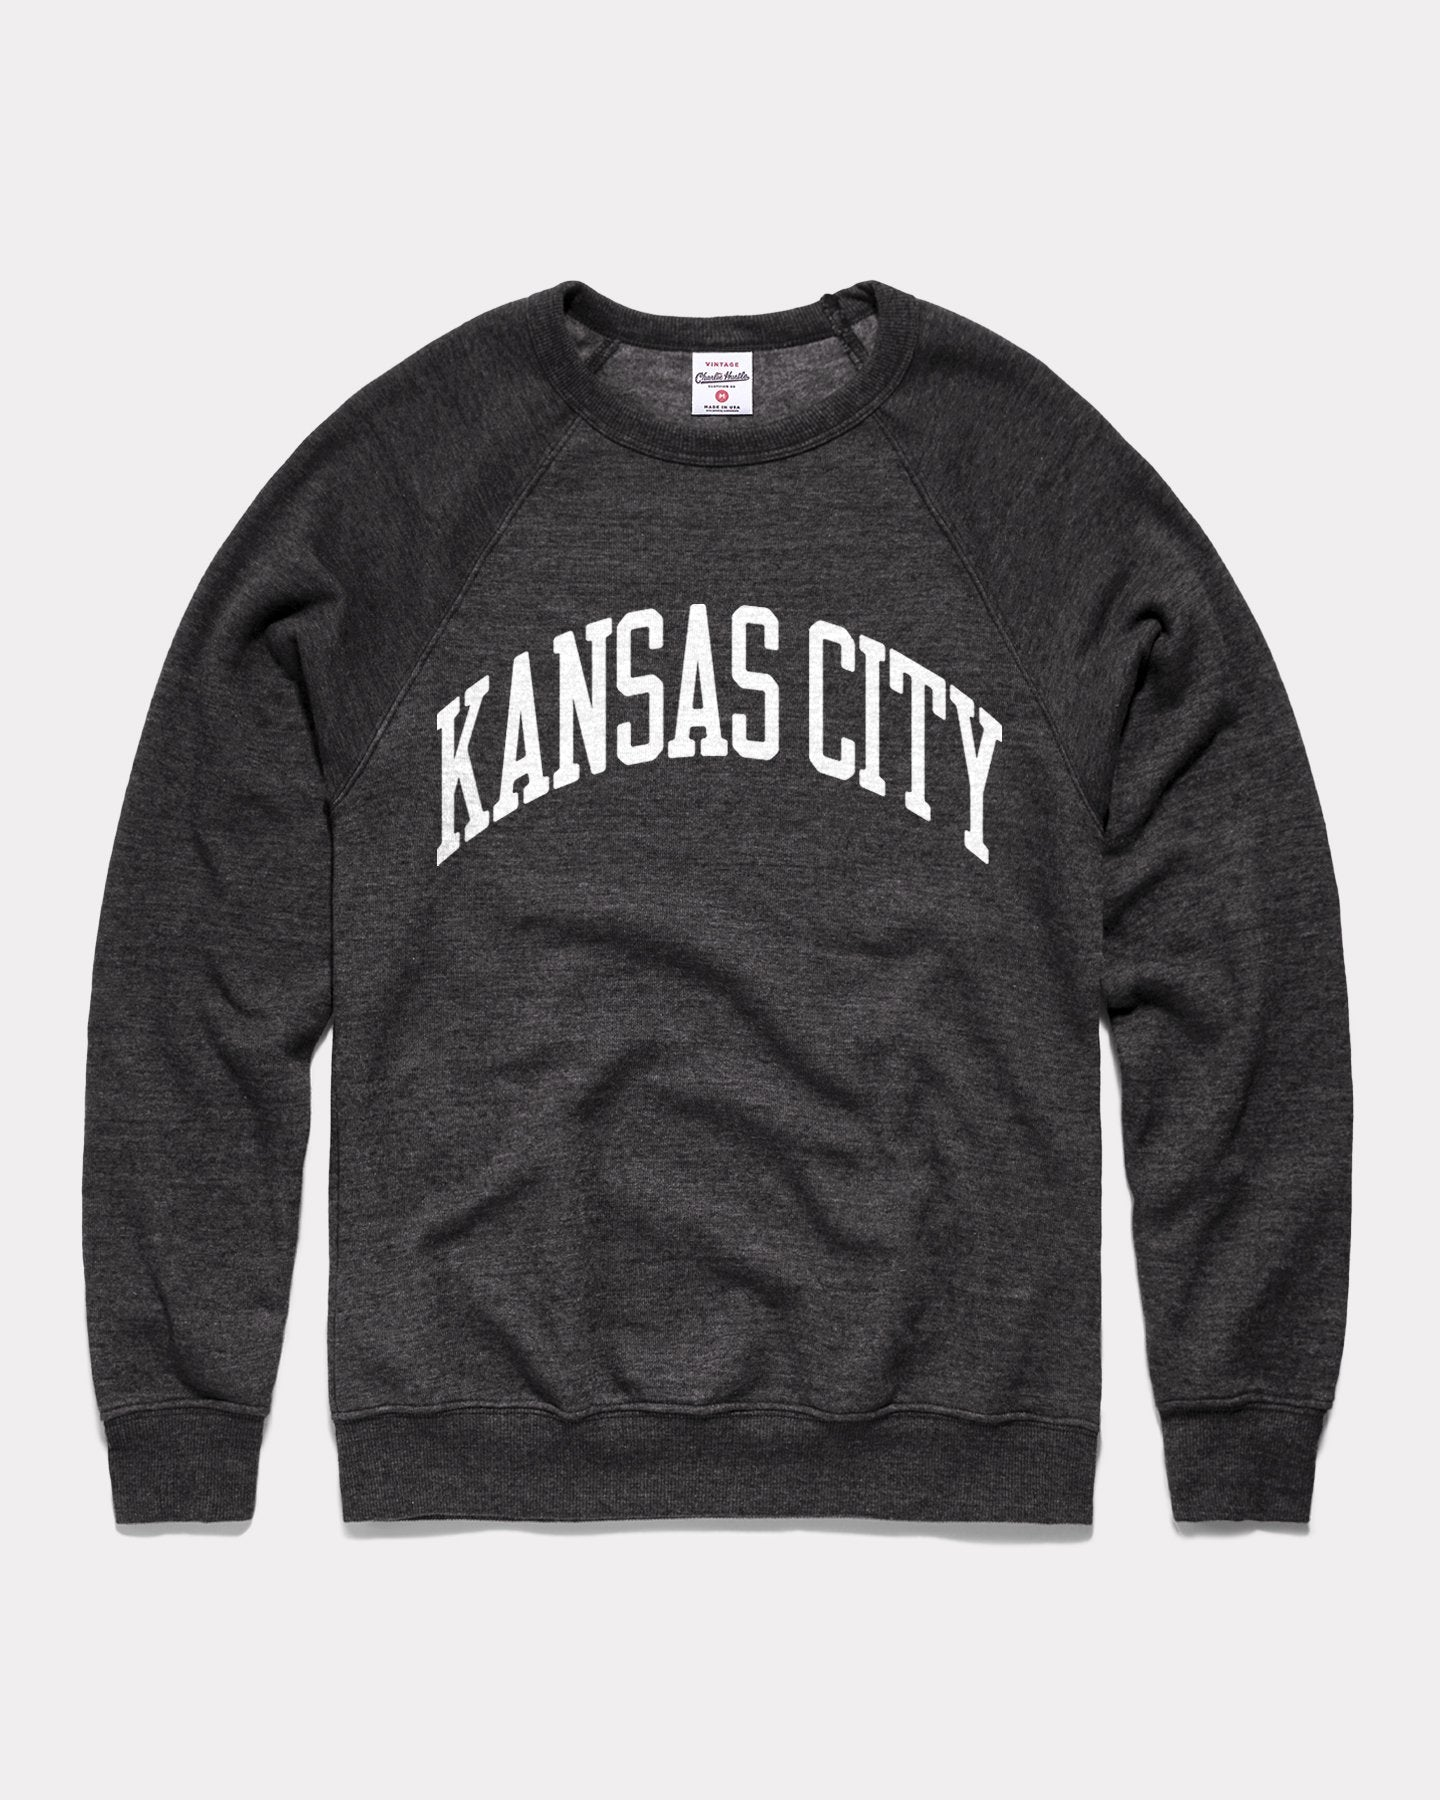 Black & White Kansas City Arch Vintage Crewneck Sweatshirt